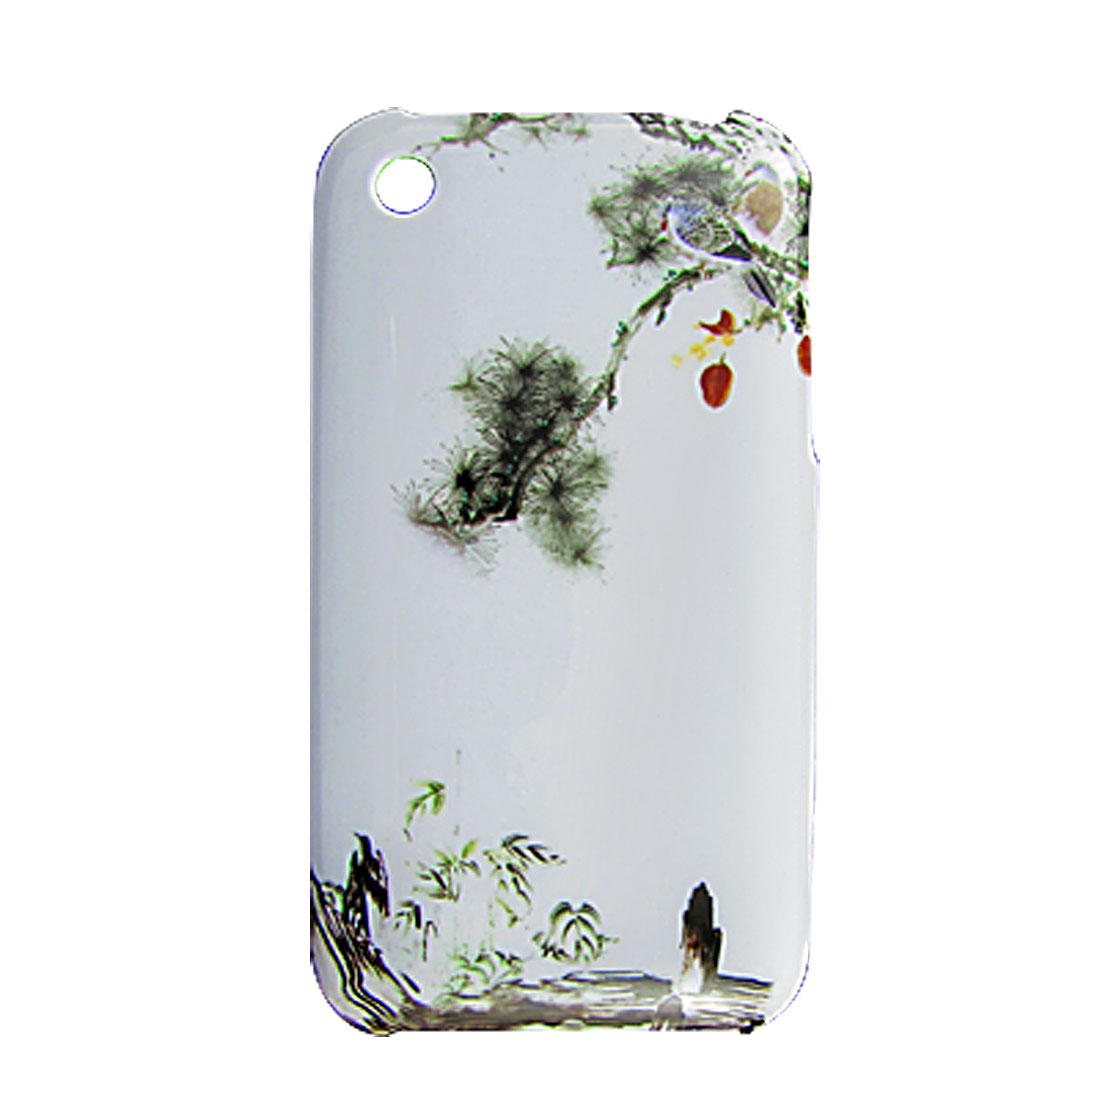 Nature Landscape Print Plastic Back Case for iPhone 3G